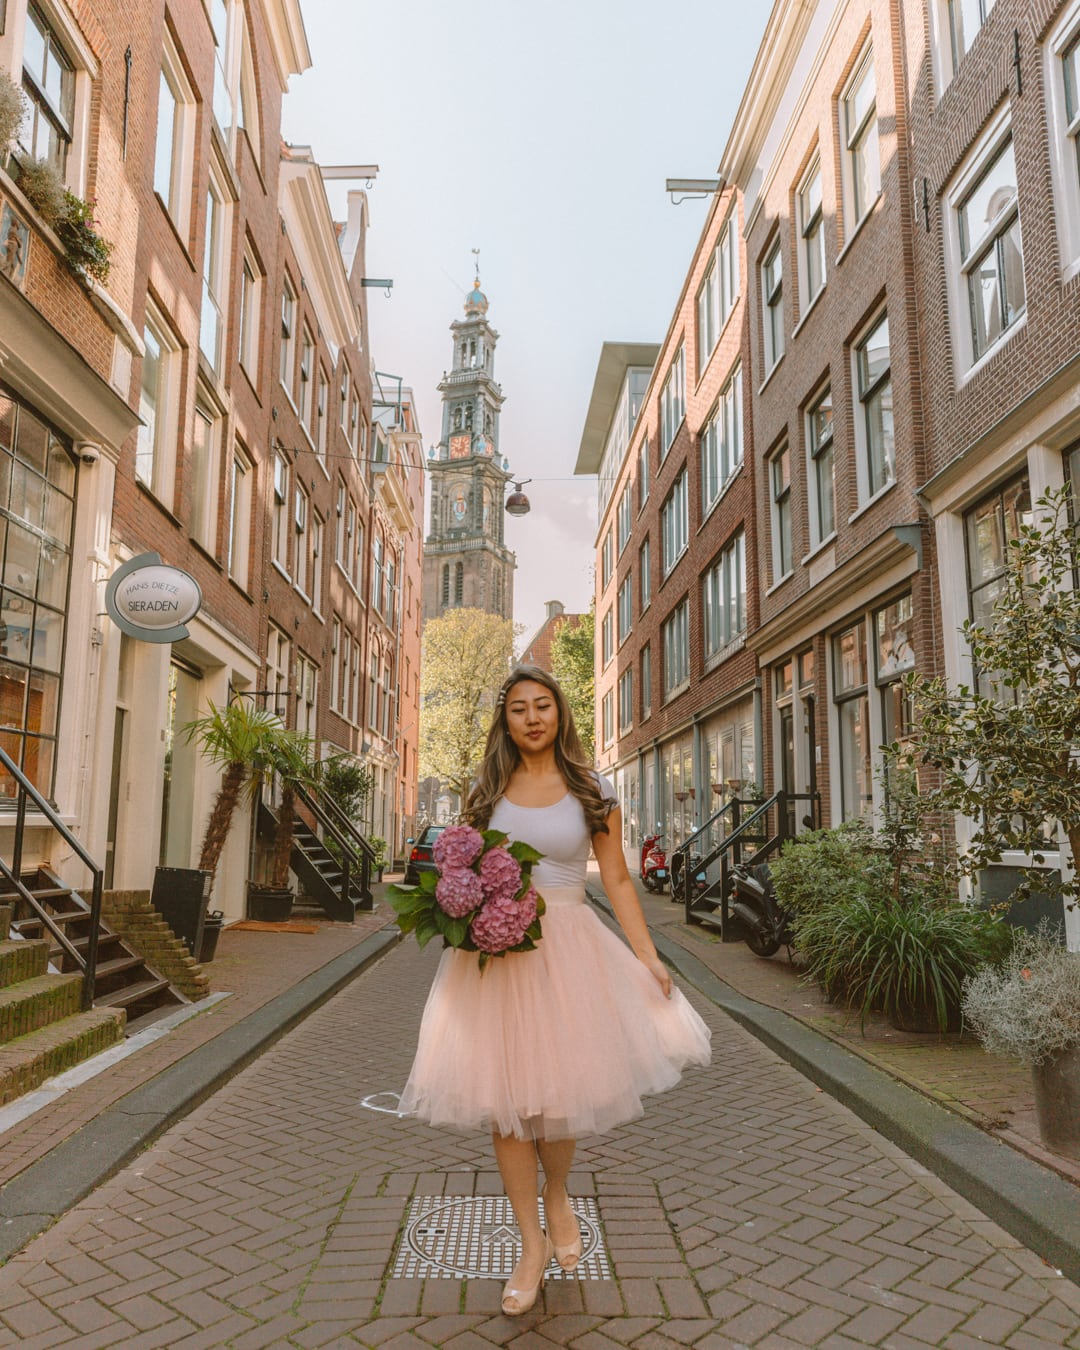 Most Instagrammable Places in Amsterdam (Local Guide)